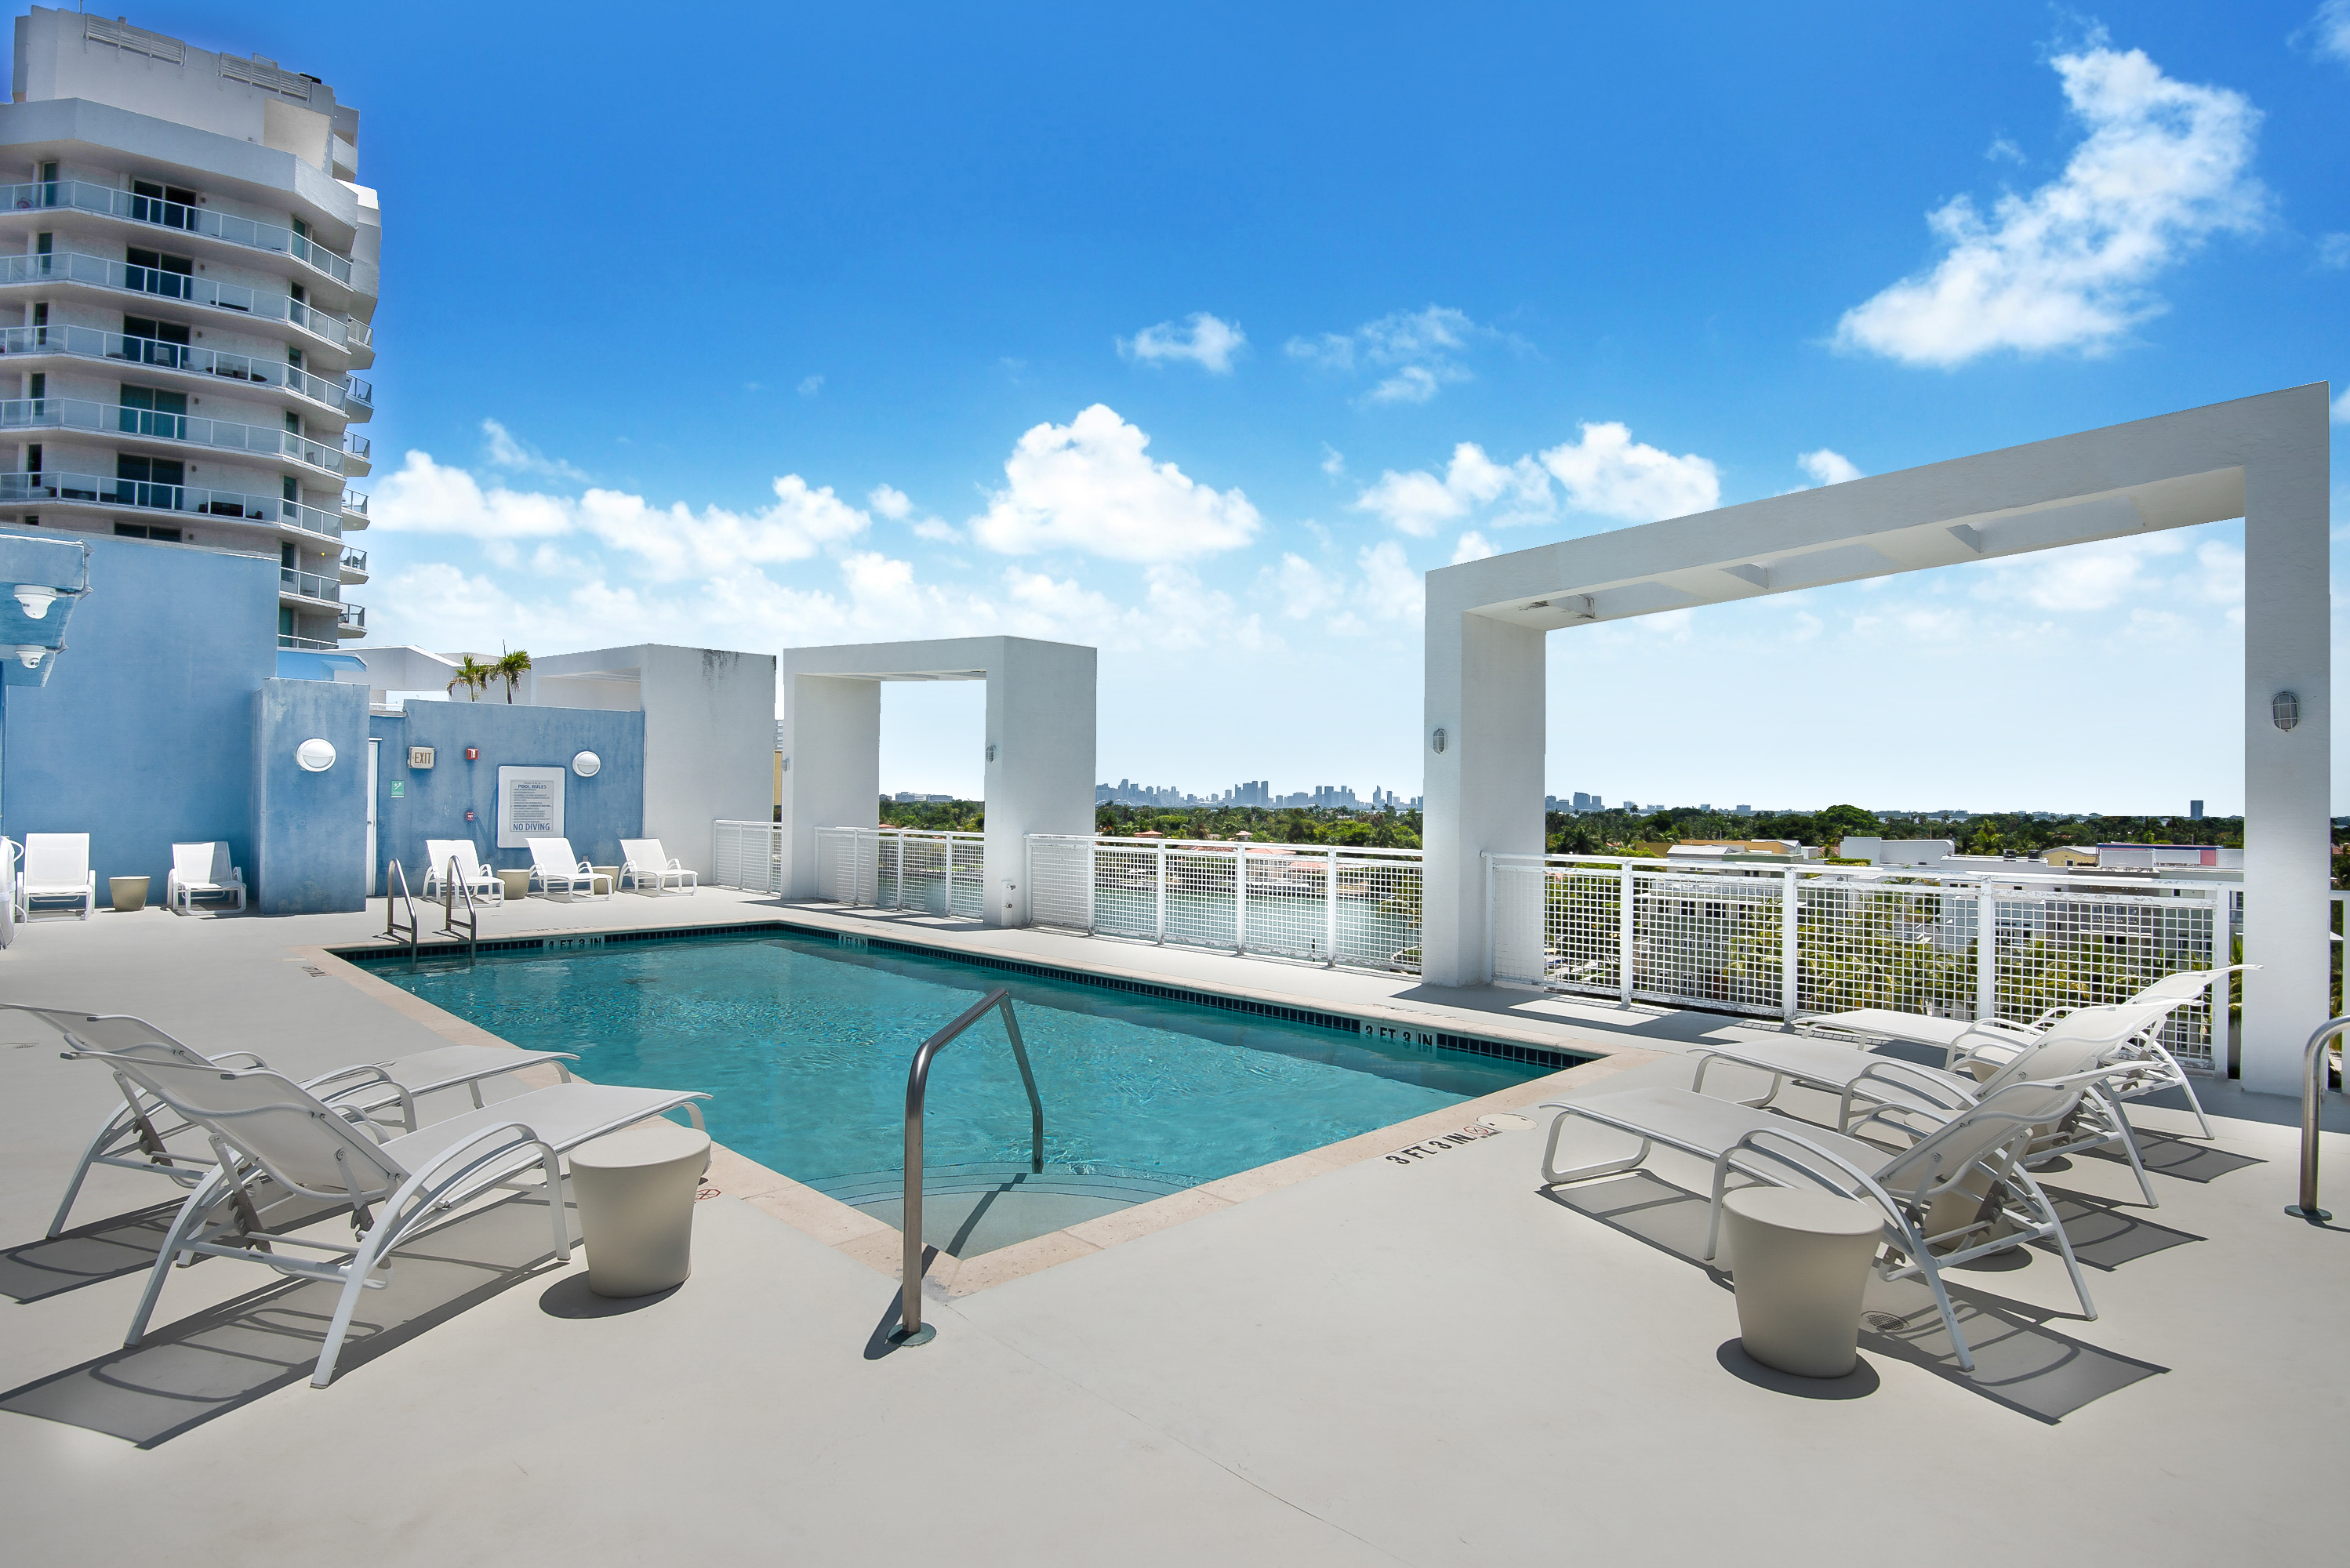 Maison individuelle à vendre en 5970 Indian Creek Dr 303, Miami Beach, Floride ,33140  , États-Unis